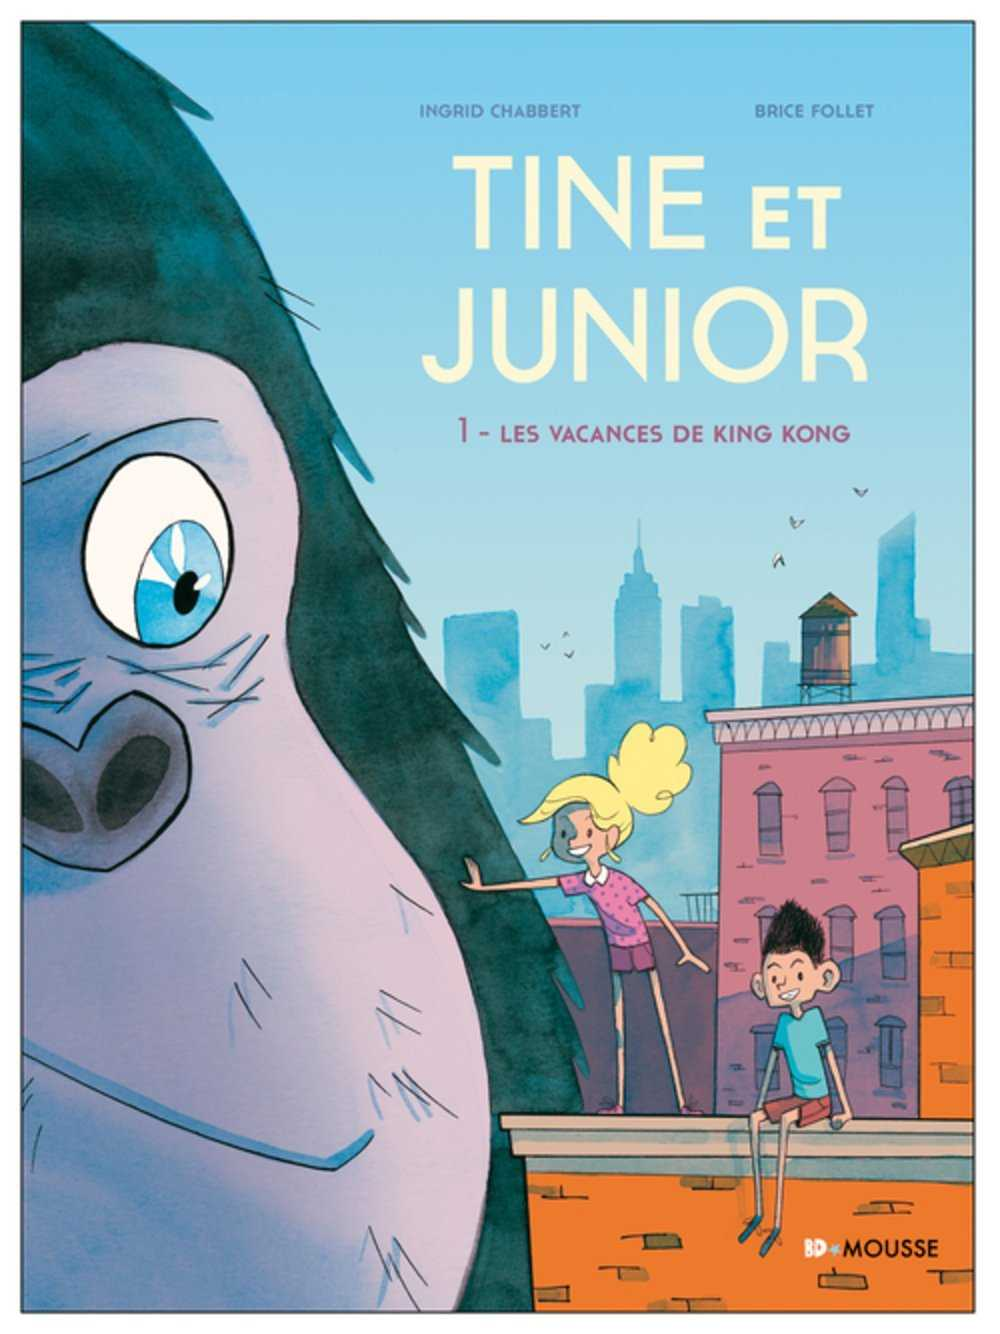 Tine et Junior, King Kong prend sa retraite